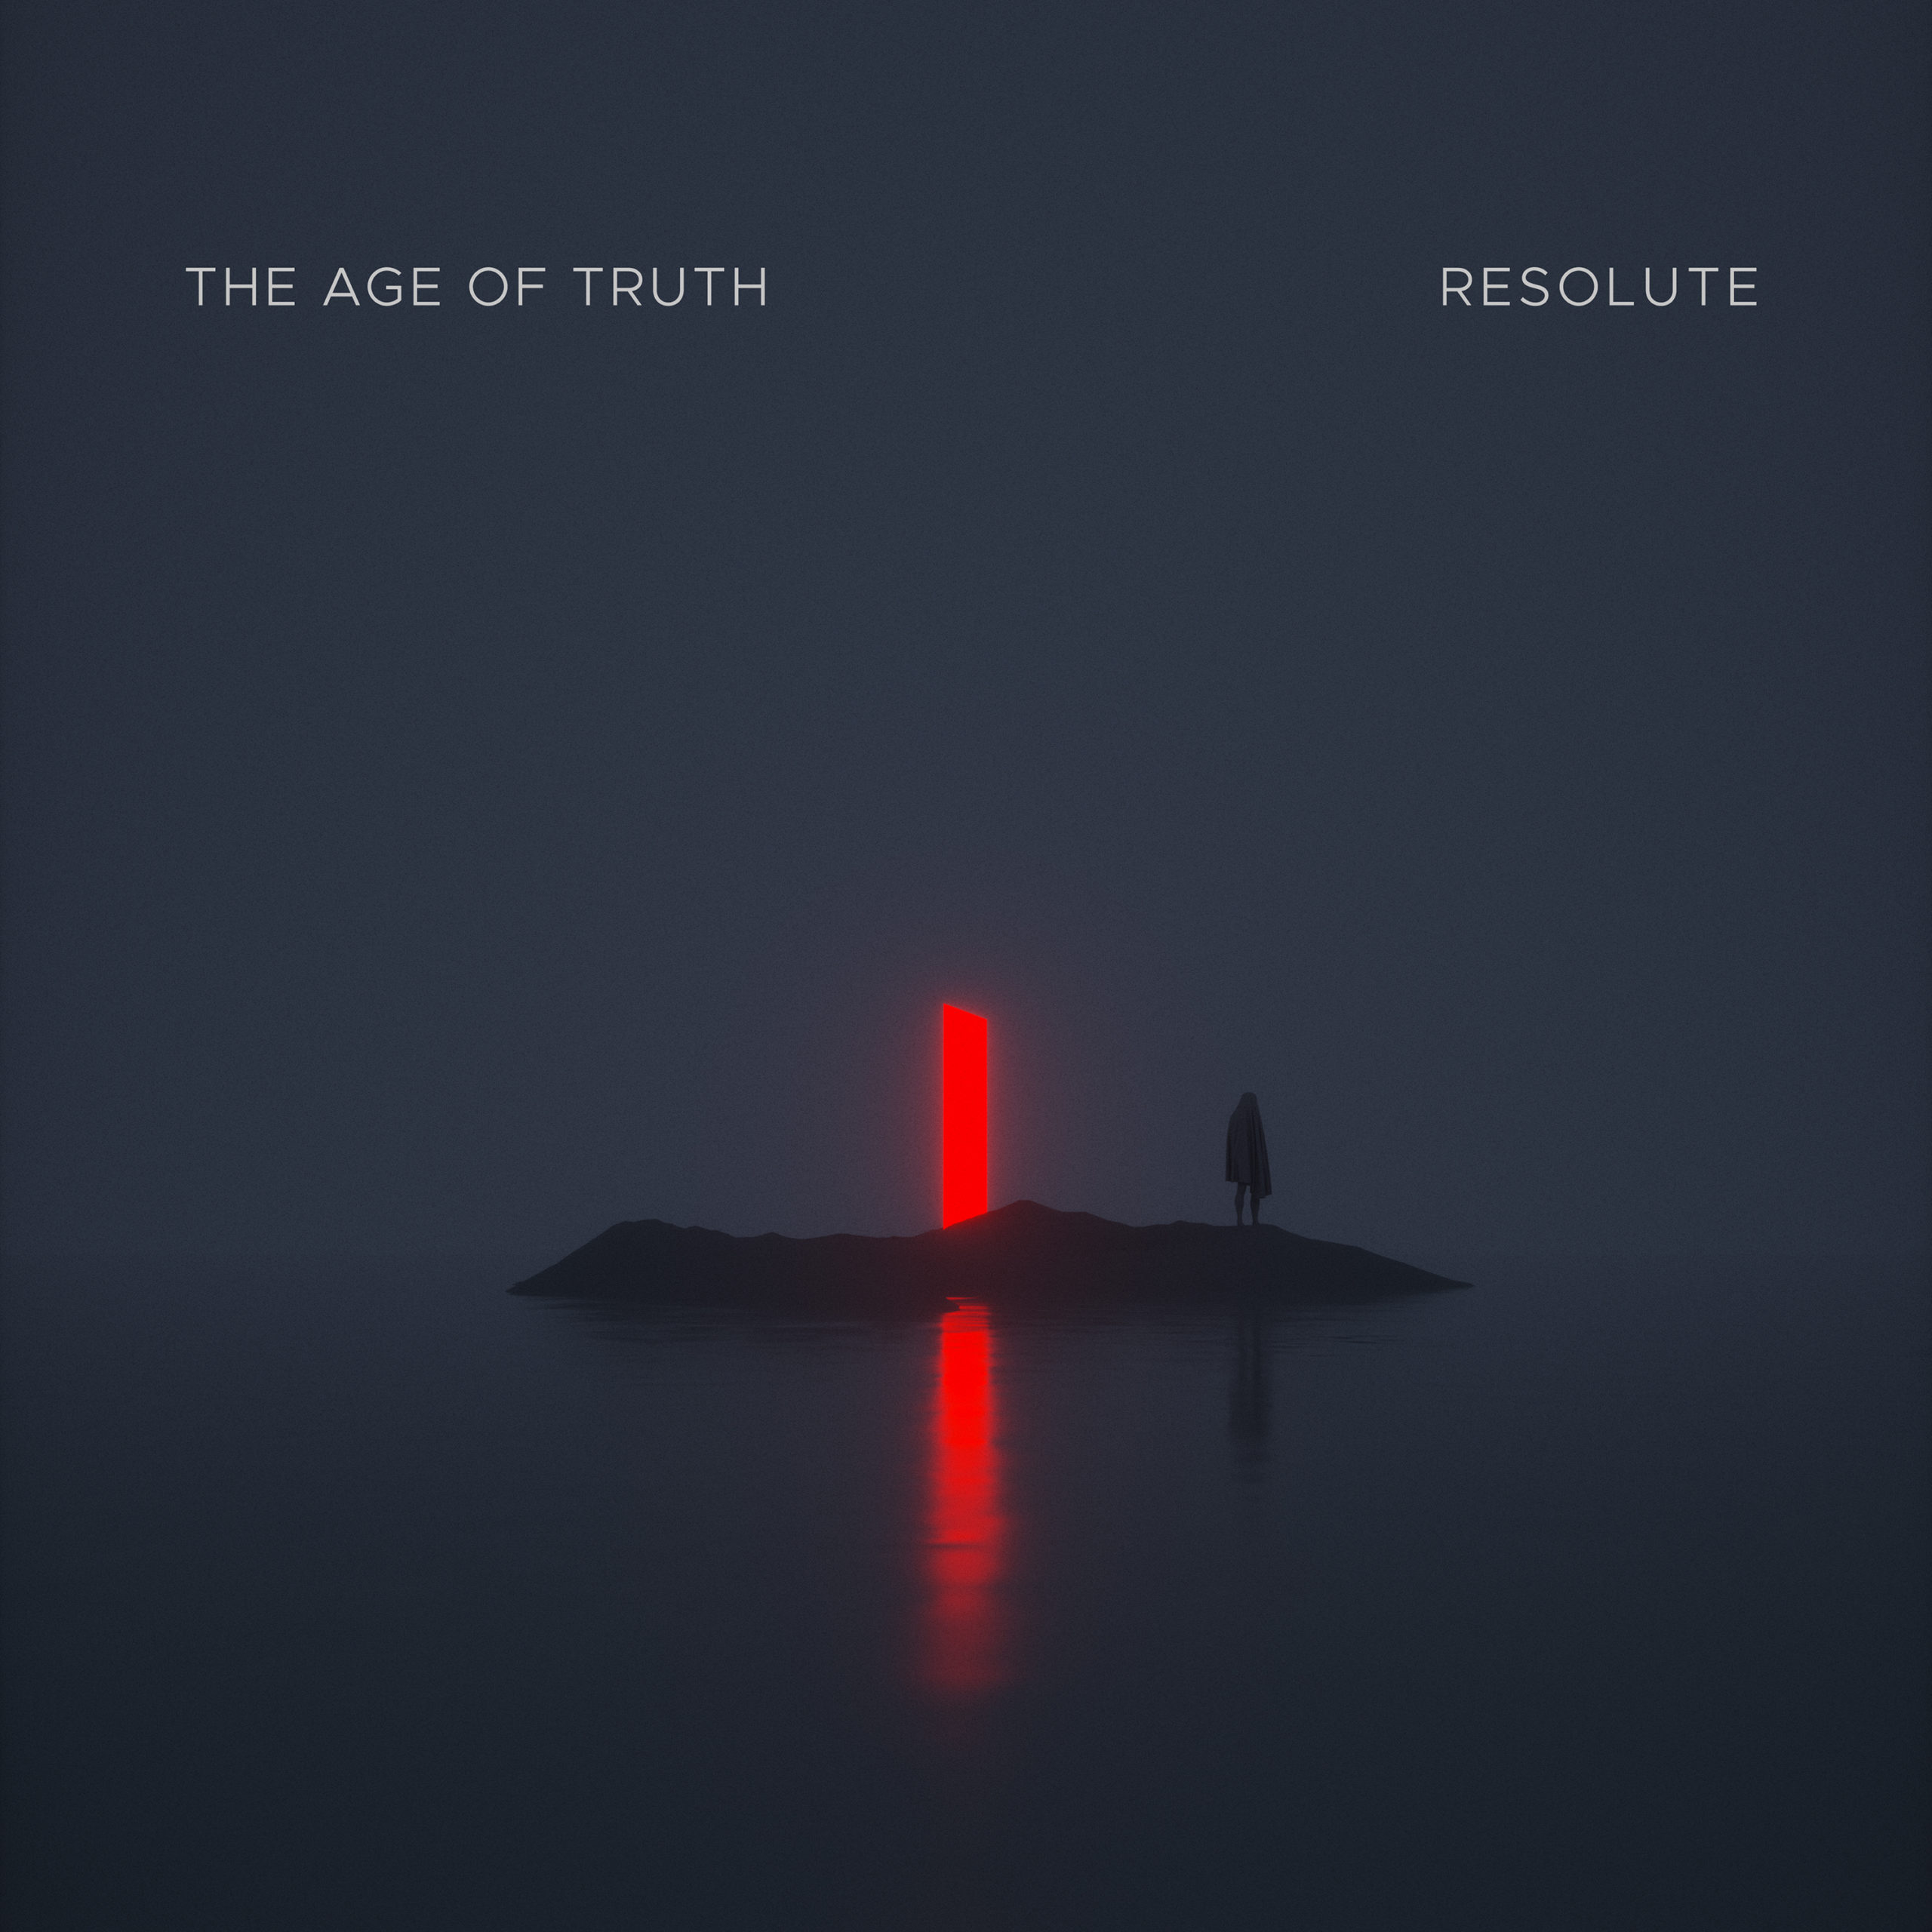 the age of truth resolute